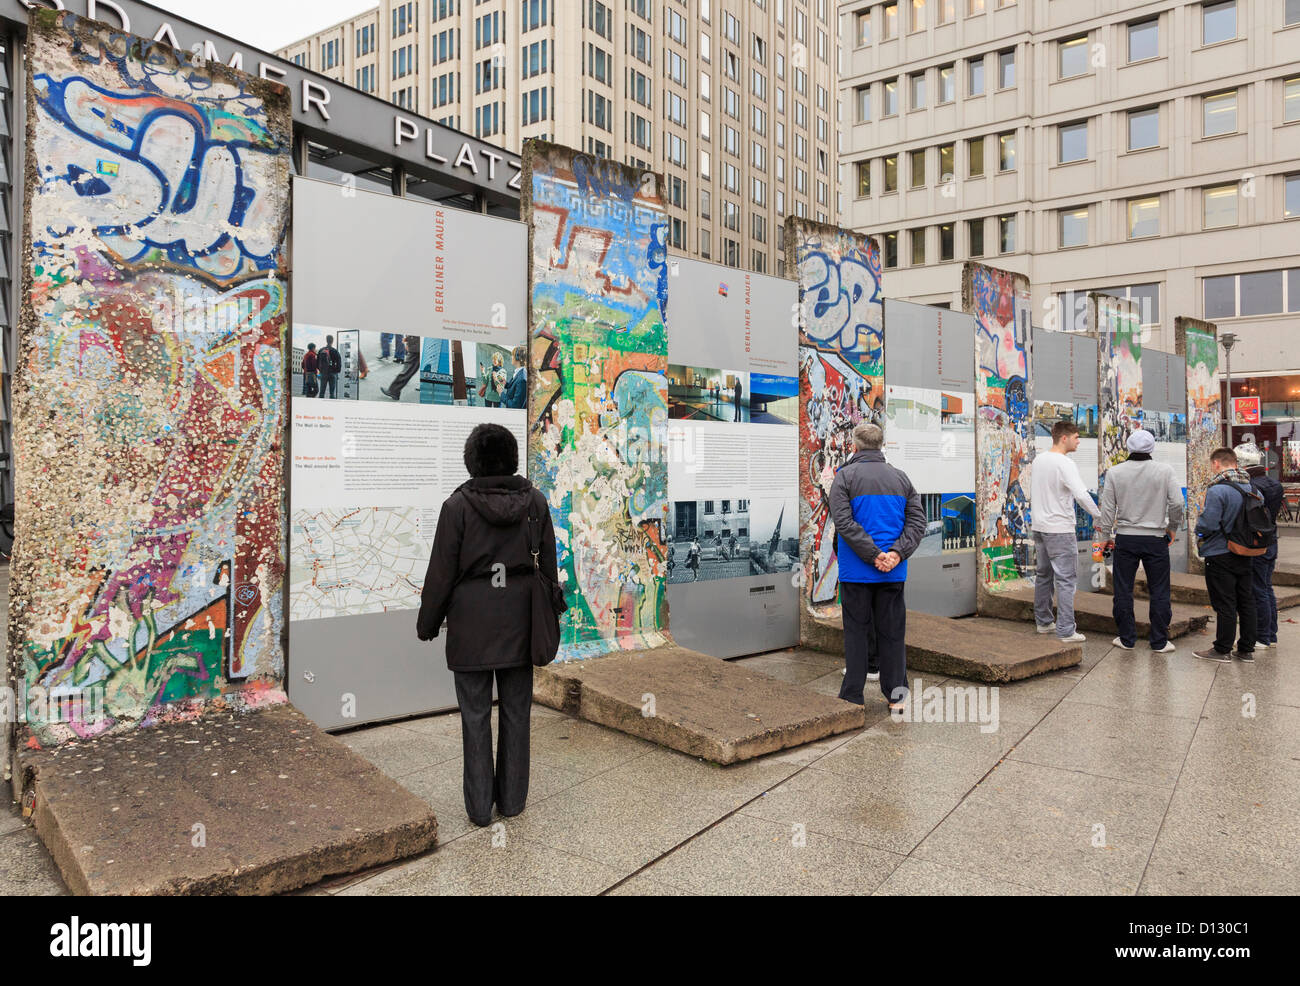 Graffiti wall reading - Stock Photo Street Scene With Tourists Reading Information By Sections Of The Wall Now With Graffiti In Former Death Strip At Potsdamer Platz Berlin